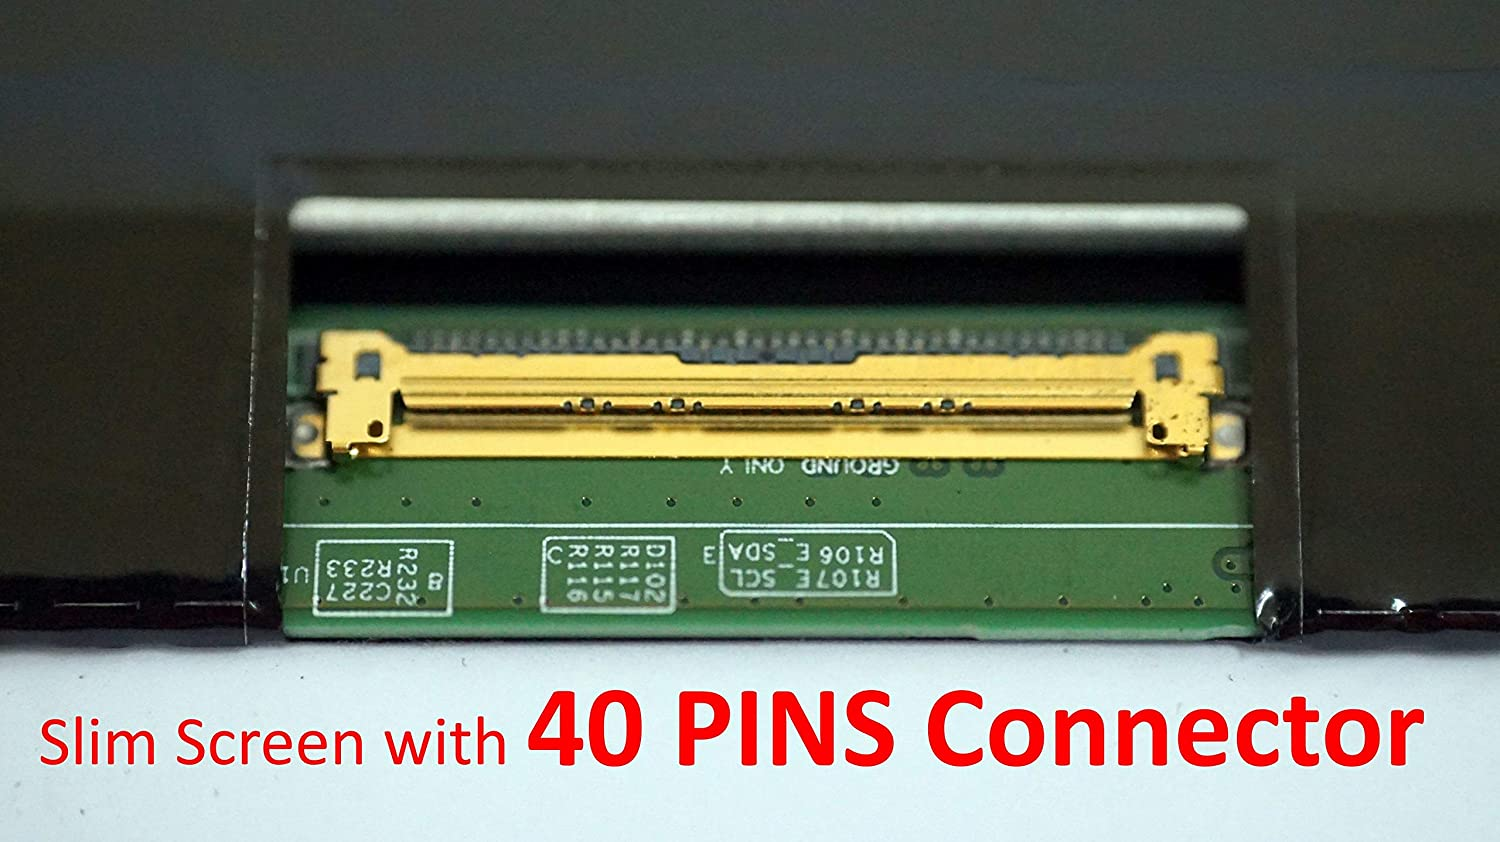 TOUCH Dell Inspiron 15-5558 Ltn156at40 Replacement LAPTOP LCD Screen 15.6 WXGA HD LED DIODE Substitute Only. Not a